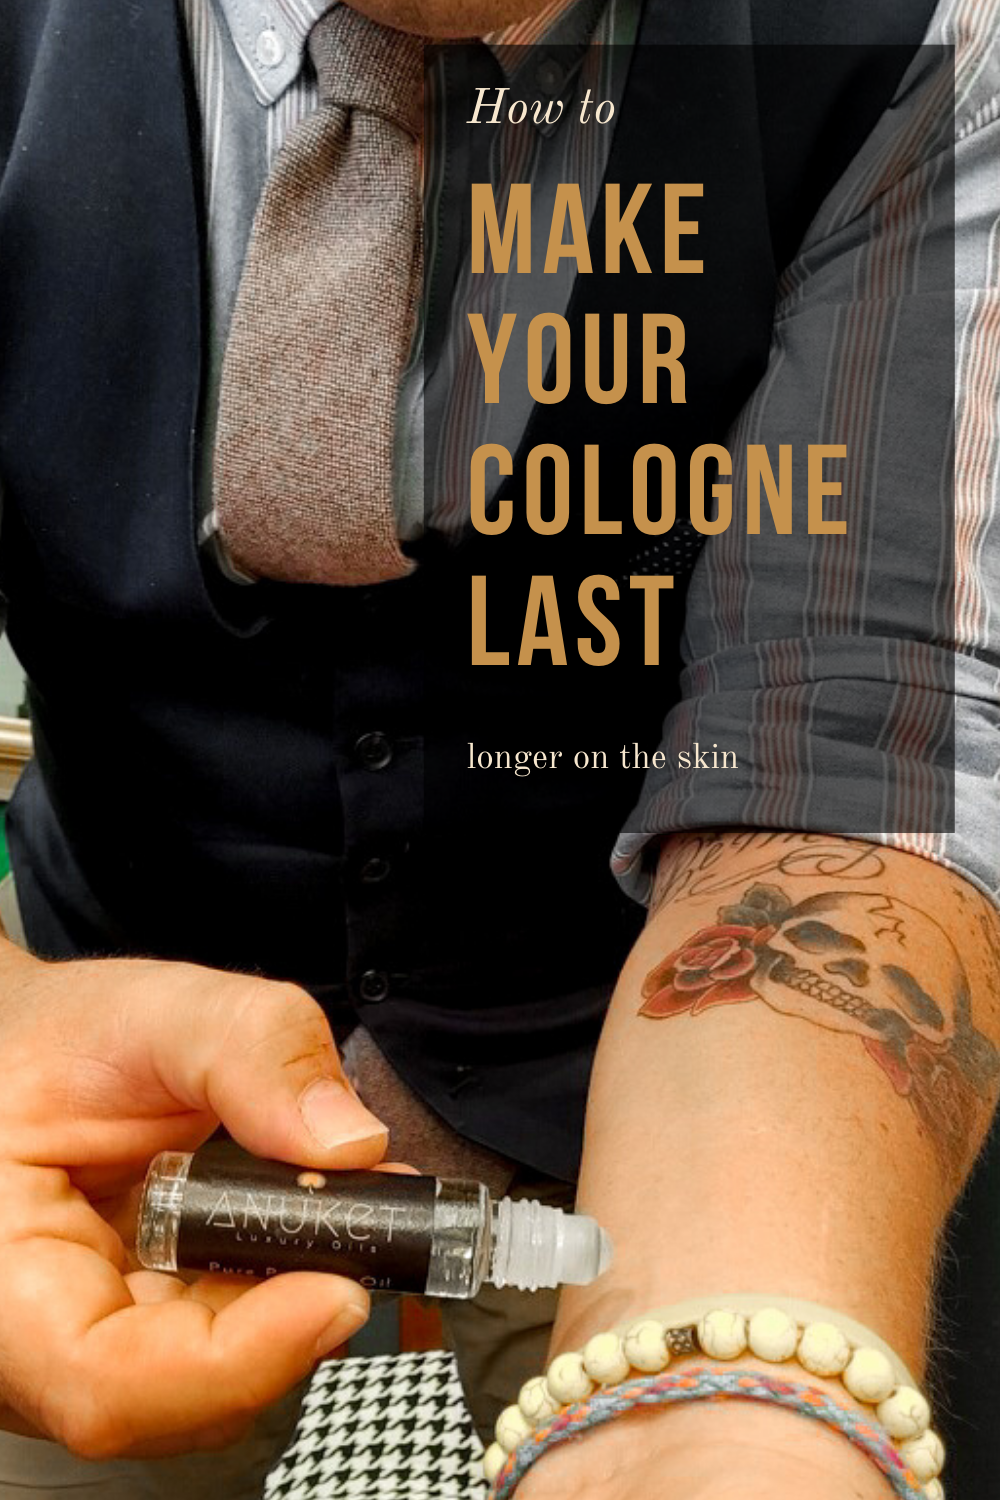 Man wearing tie putting on Anuket roll-on essential oil, with words how to make cologne last longer on the skin